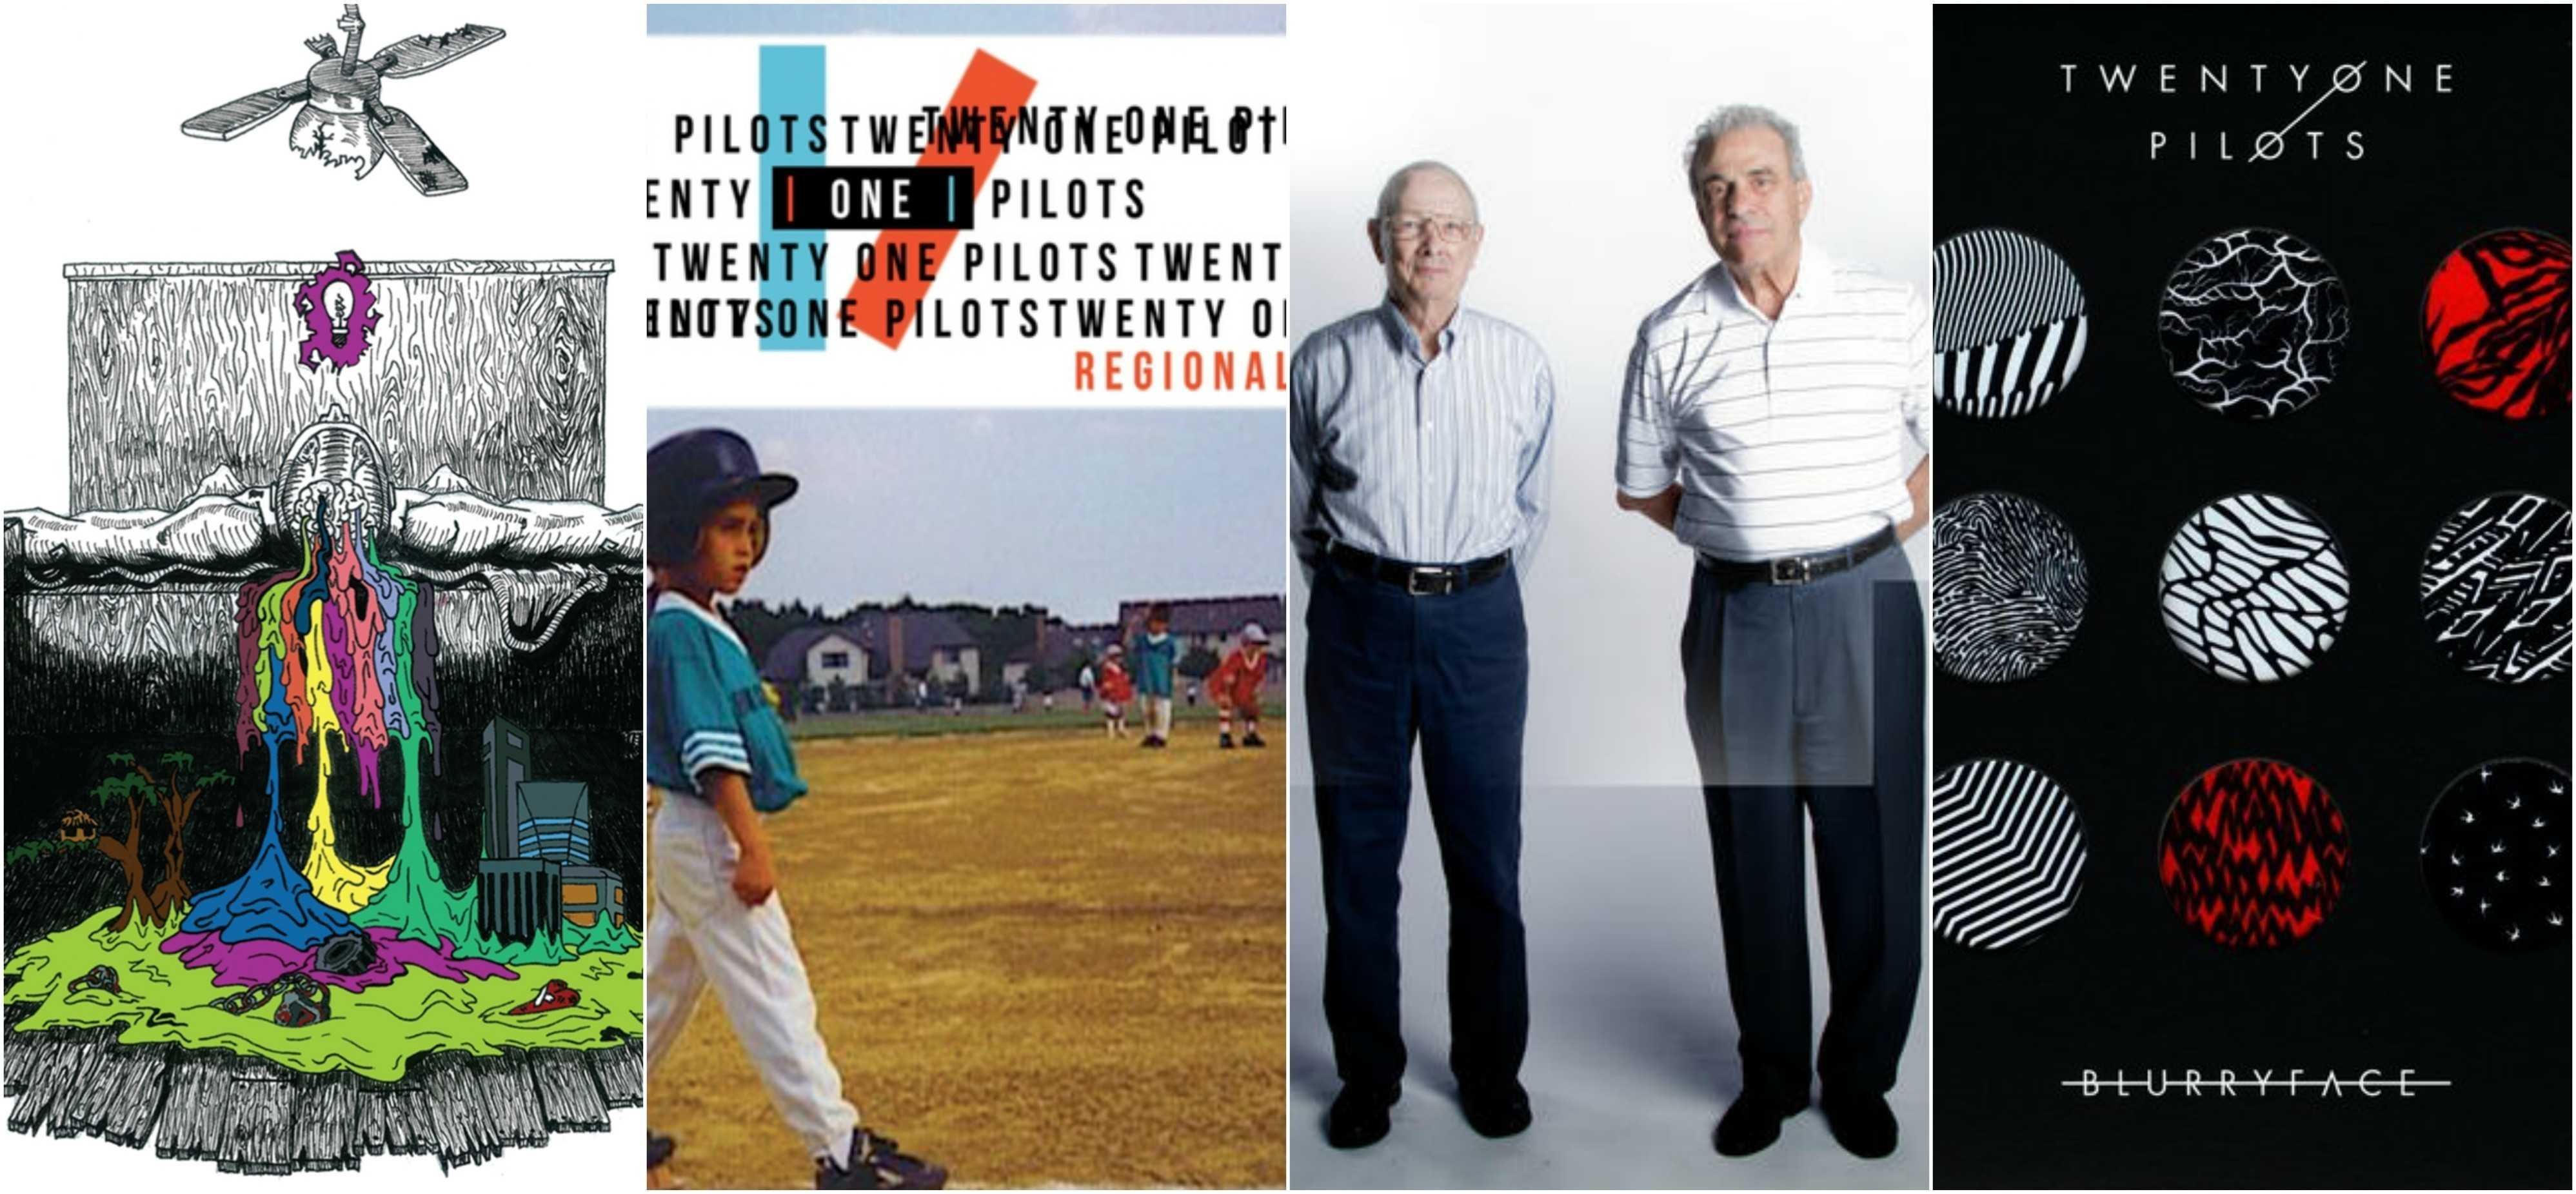 All Twenty One Pilot Albums Ranked From Worst to Best – BHS Blueprint